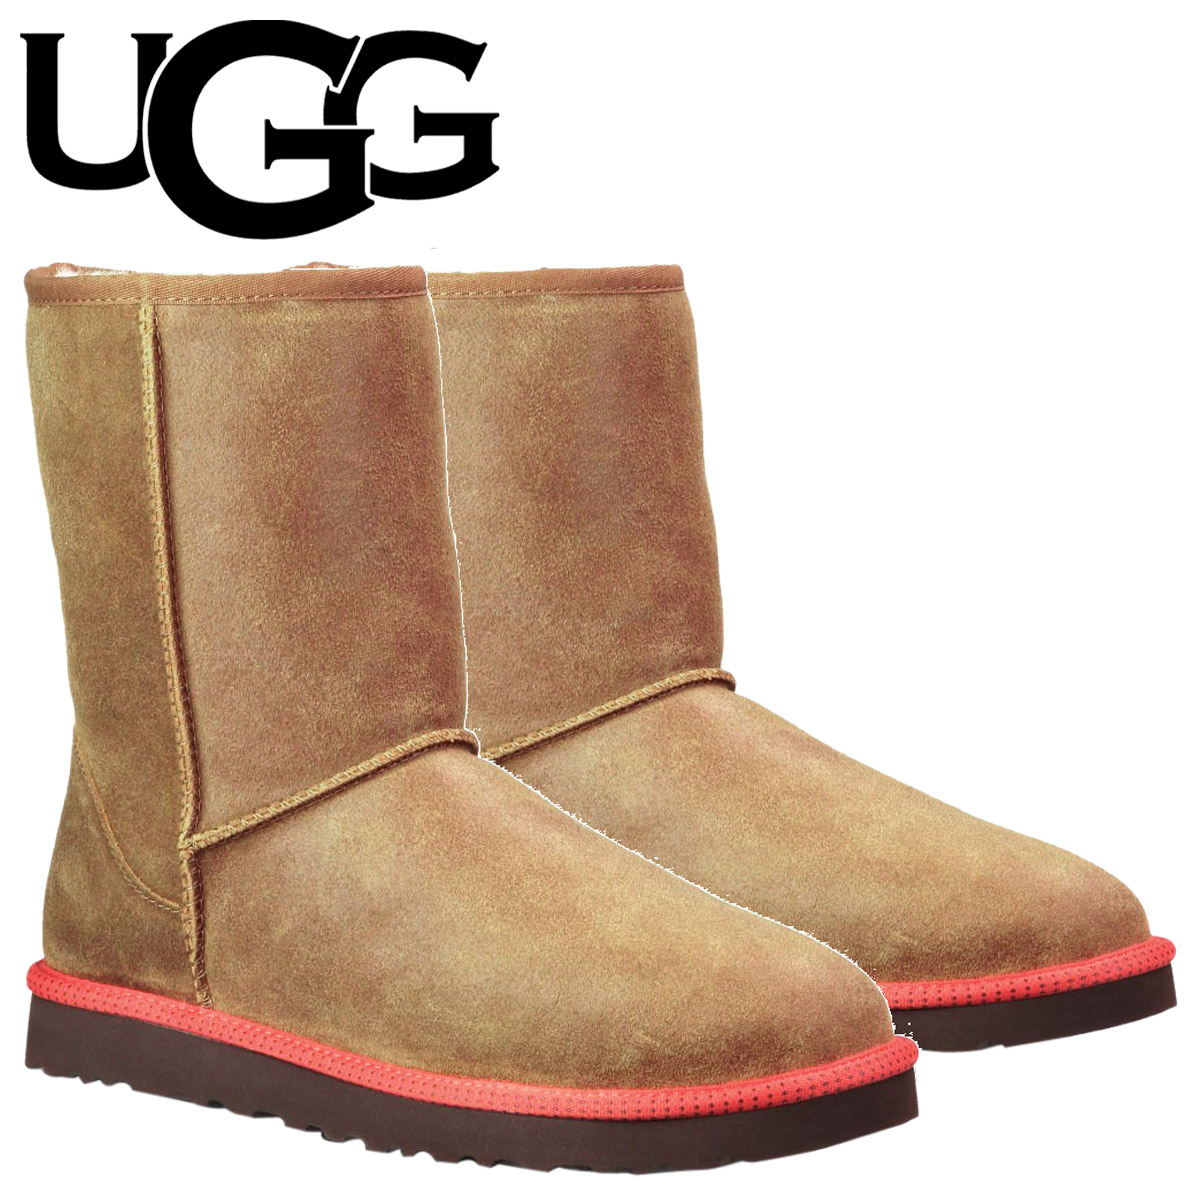 22f6c09df5a UGG UGG men's classic short boots MENS CLASSIC SHORT Shearling leather  1003950 chestnut